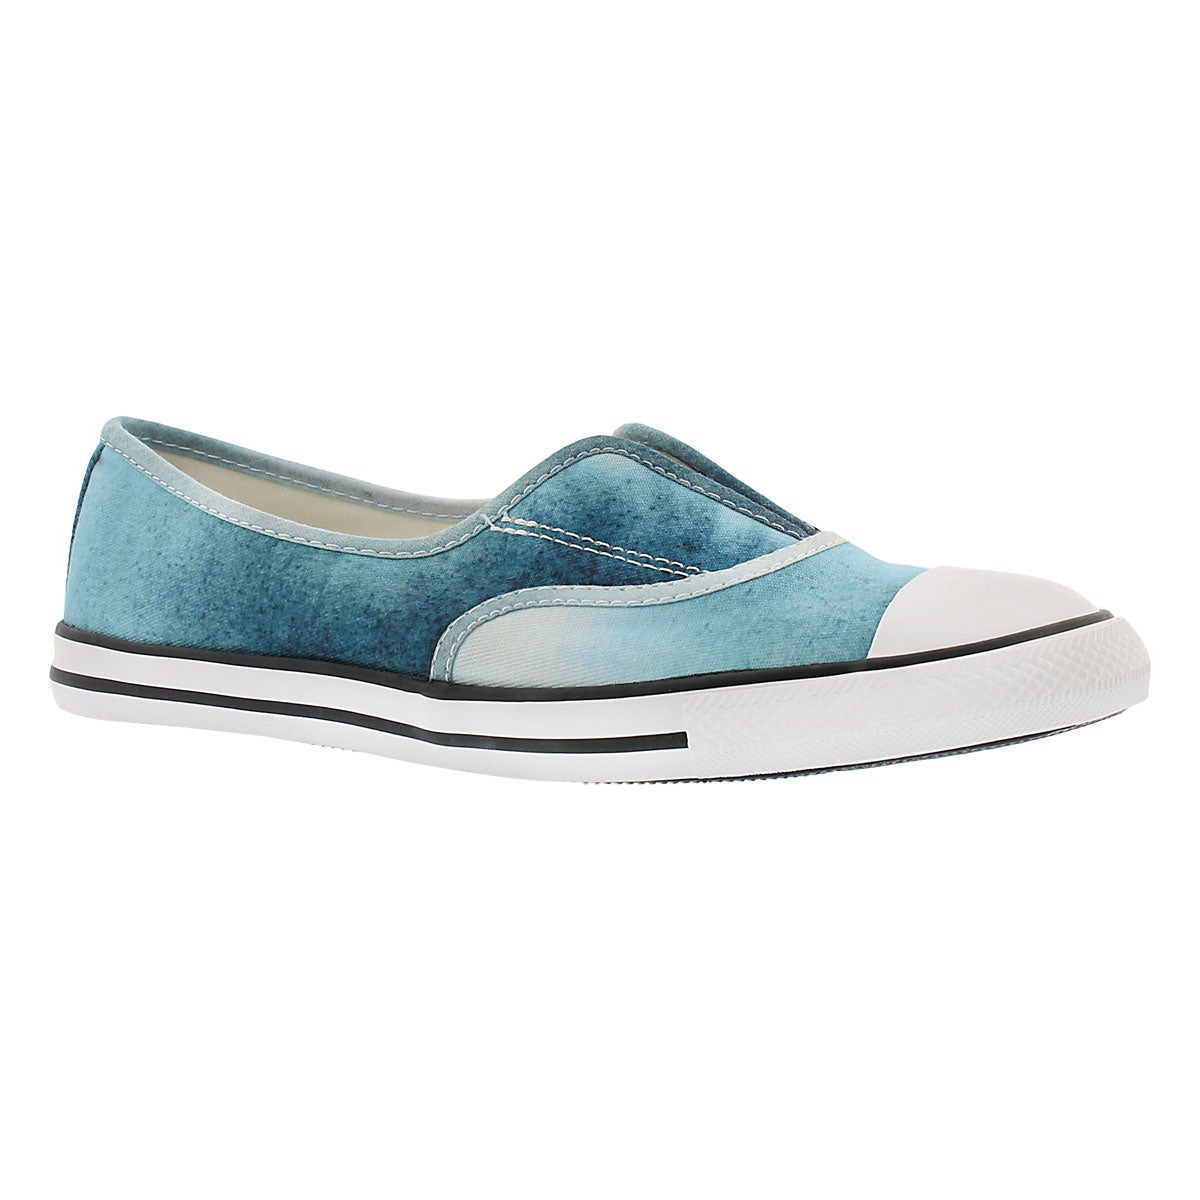 Lds CT AllStar Cove ambient blue slip on